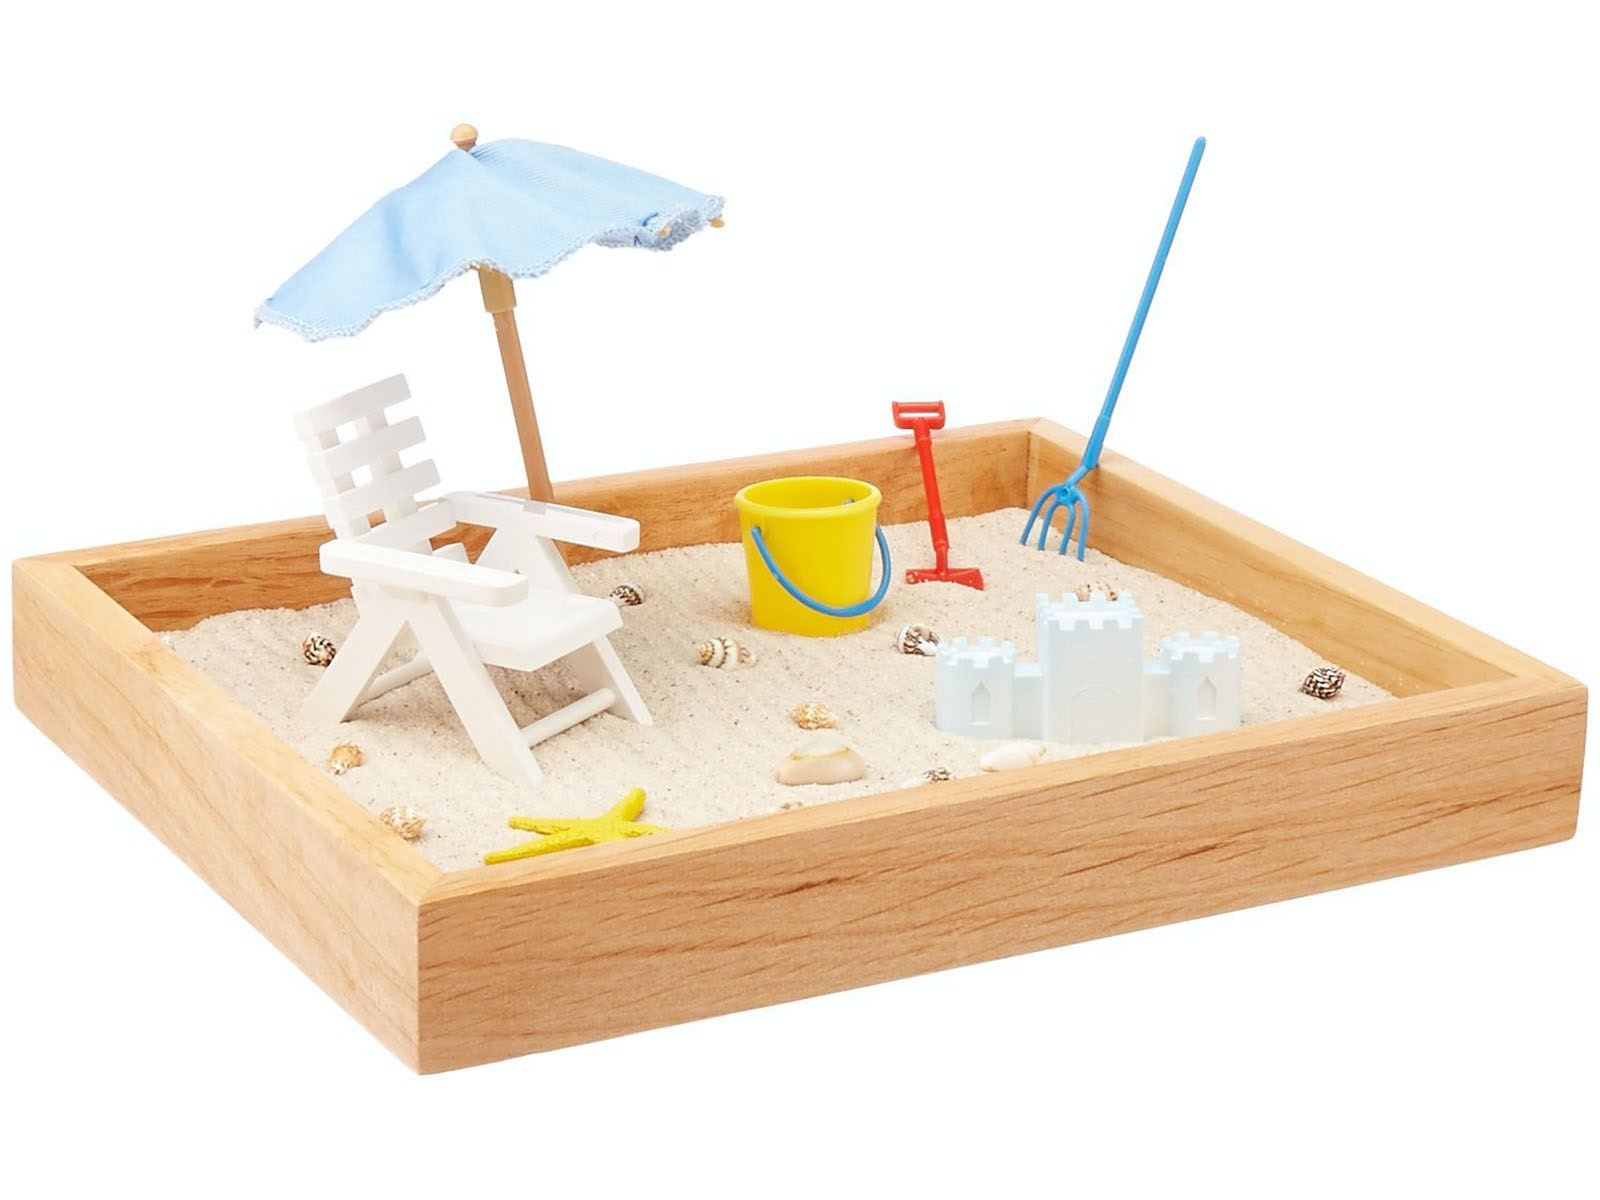 This teeny-tiny zen sandbox for itty-bitty meditation sessions